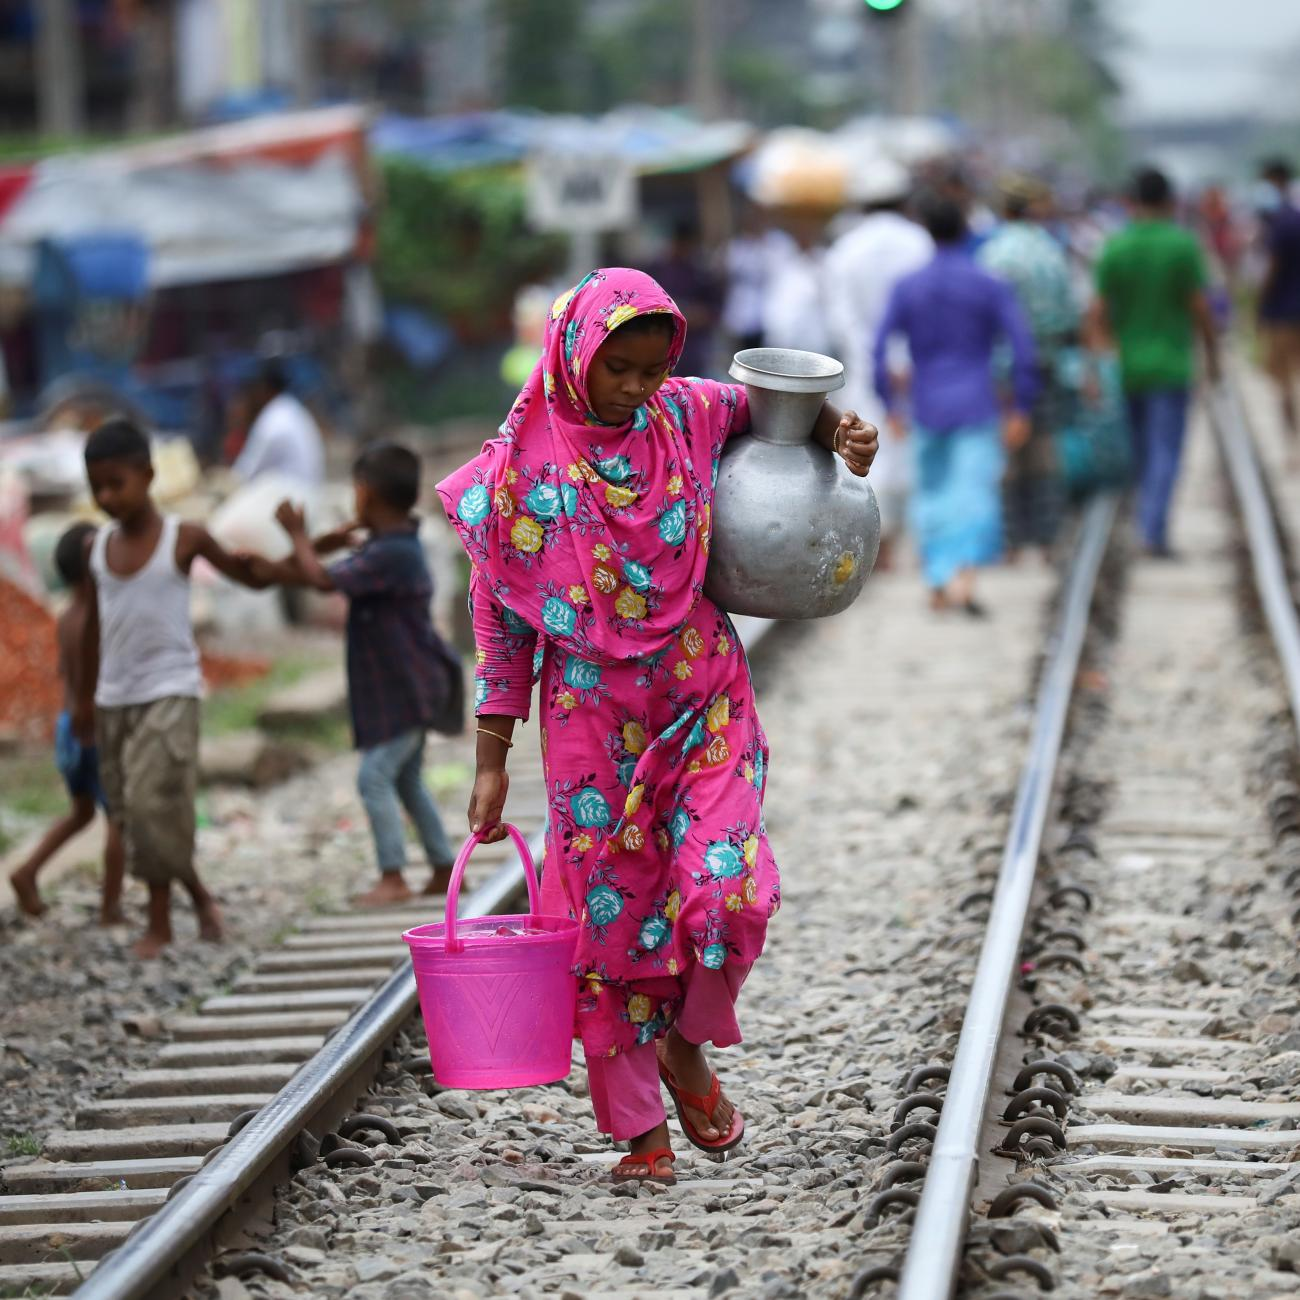 A slum dweller woman carries drinking water in Dhaka, Bangladesh, September 15, 2020. REUTERS/Mohammad Ponir Hossain